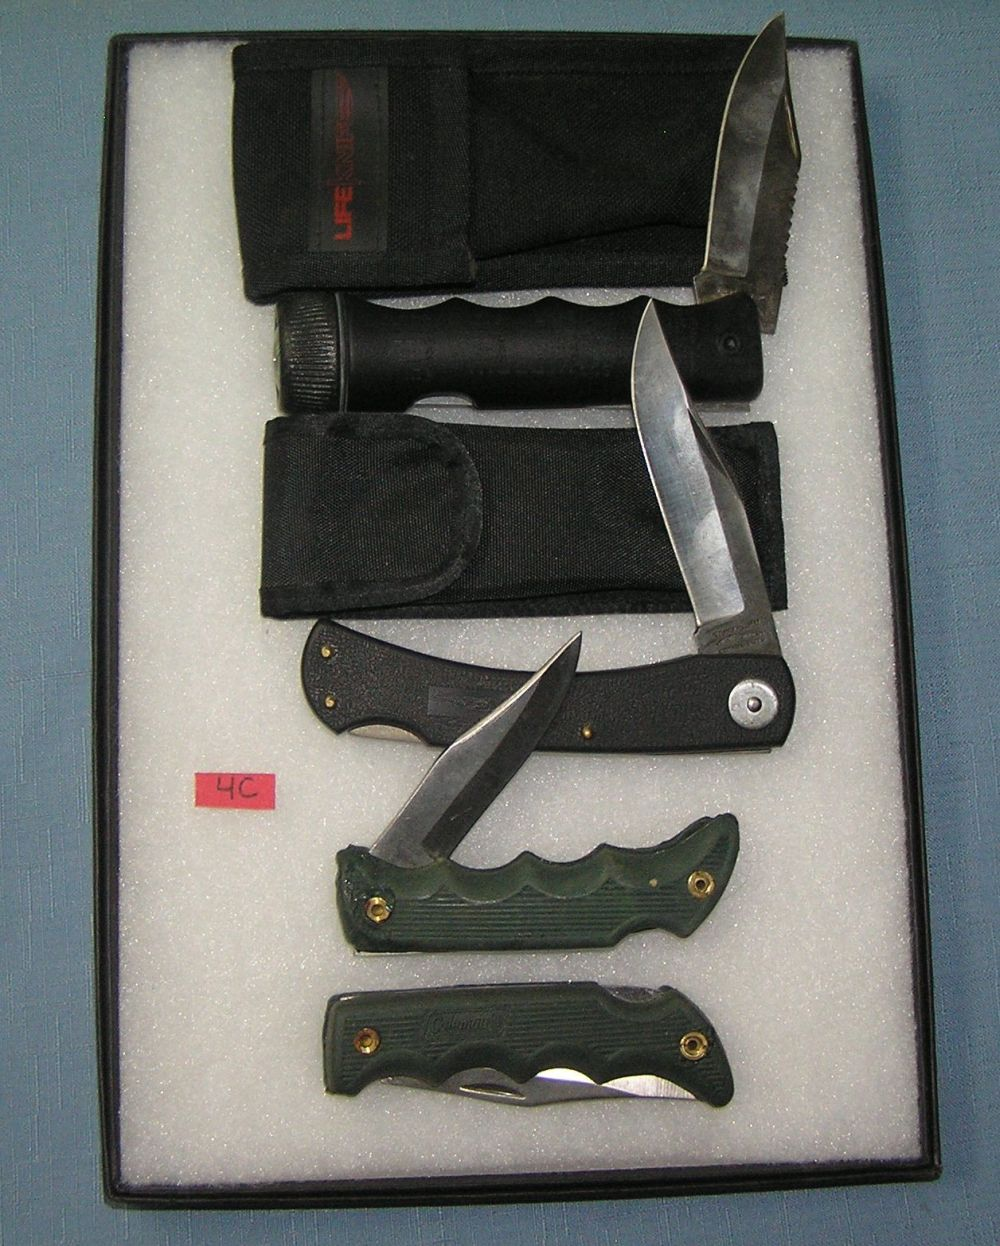 COLLECTION OF POCKET AND SURVIVAL KNIVES AND CASES